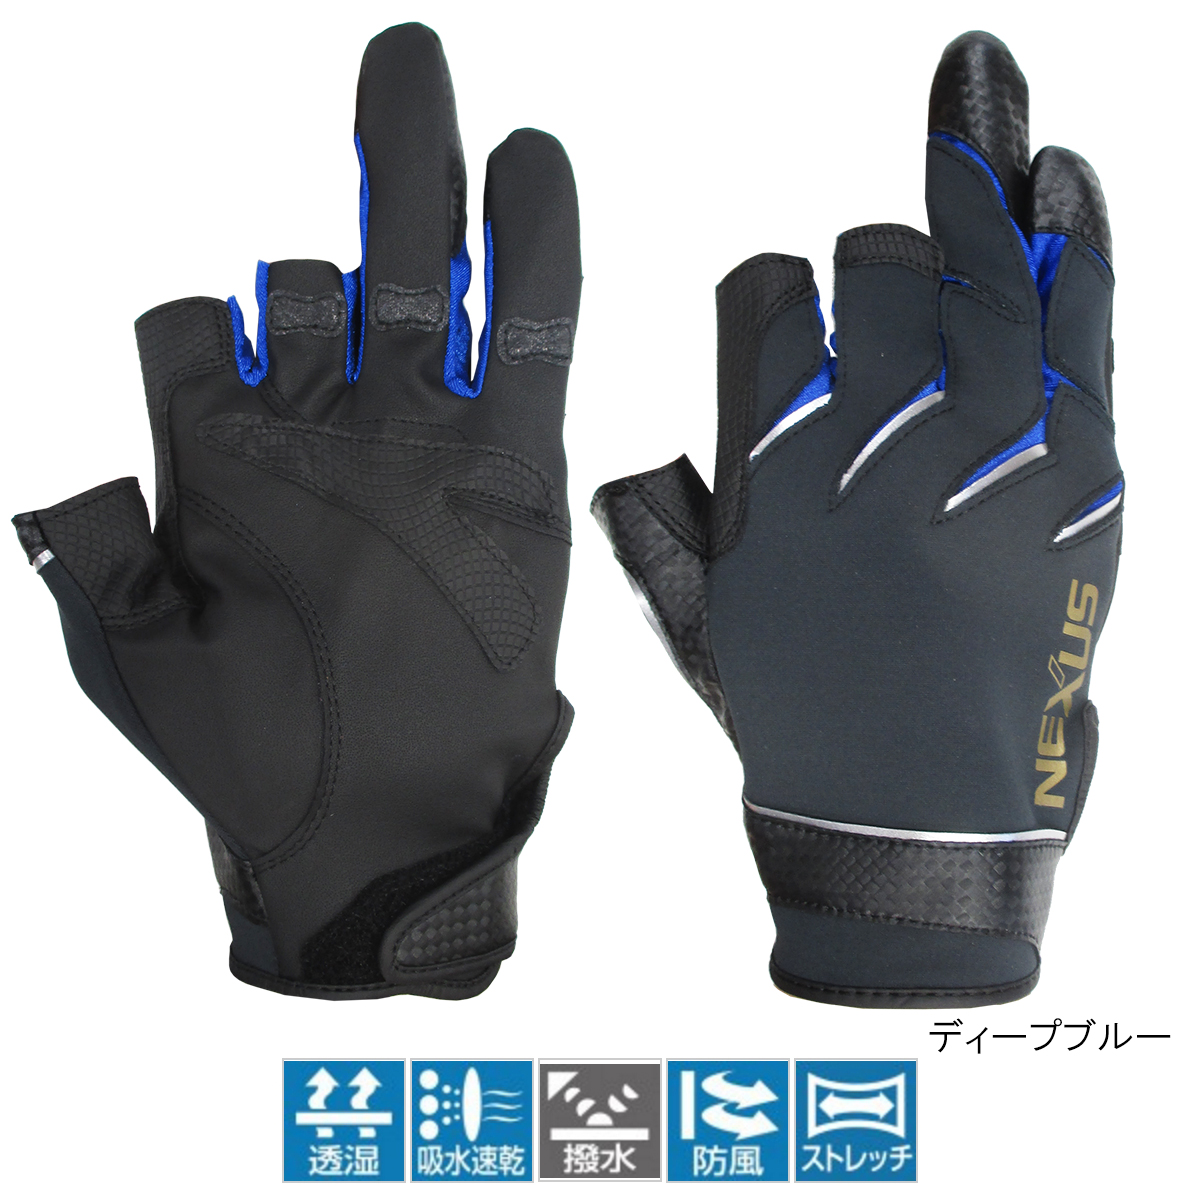 SHIMANO NEXUS storm fitting glove 3 GL-181P XL Deep Blue